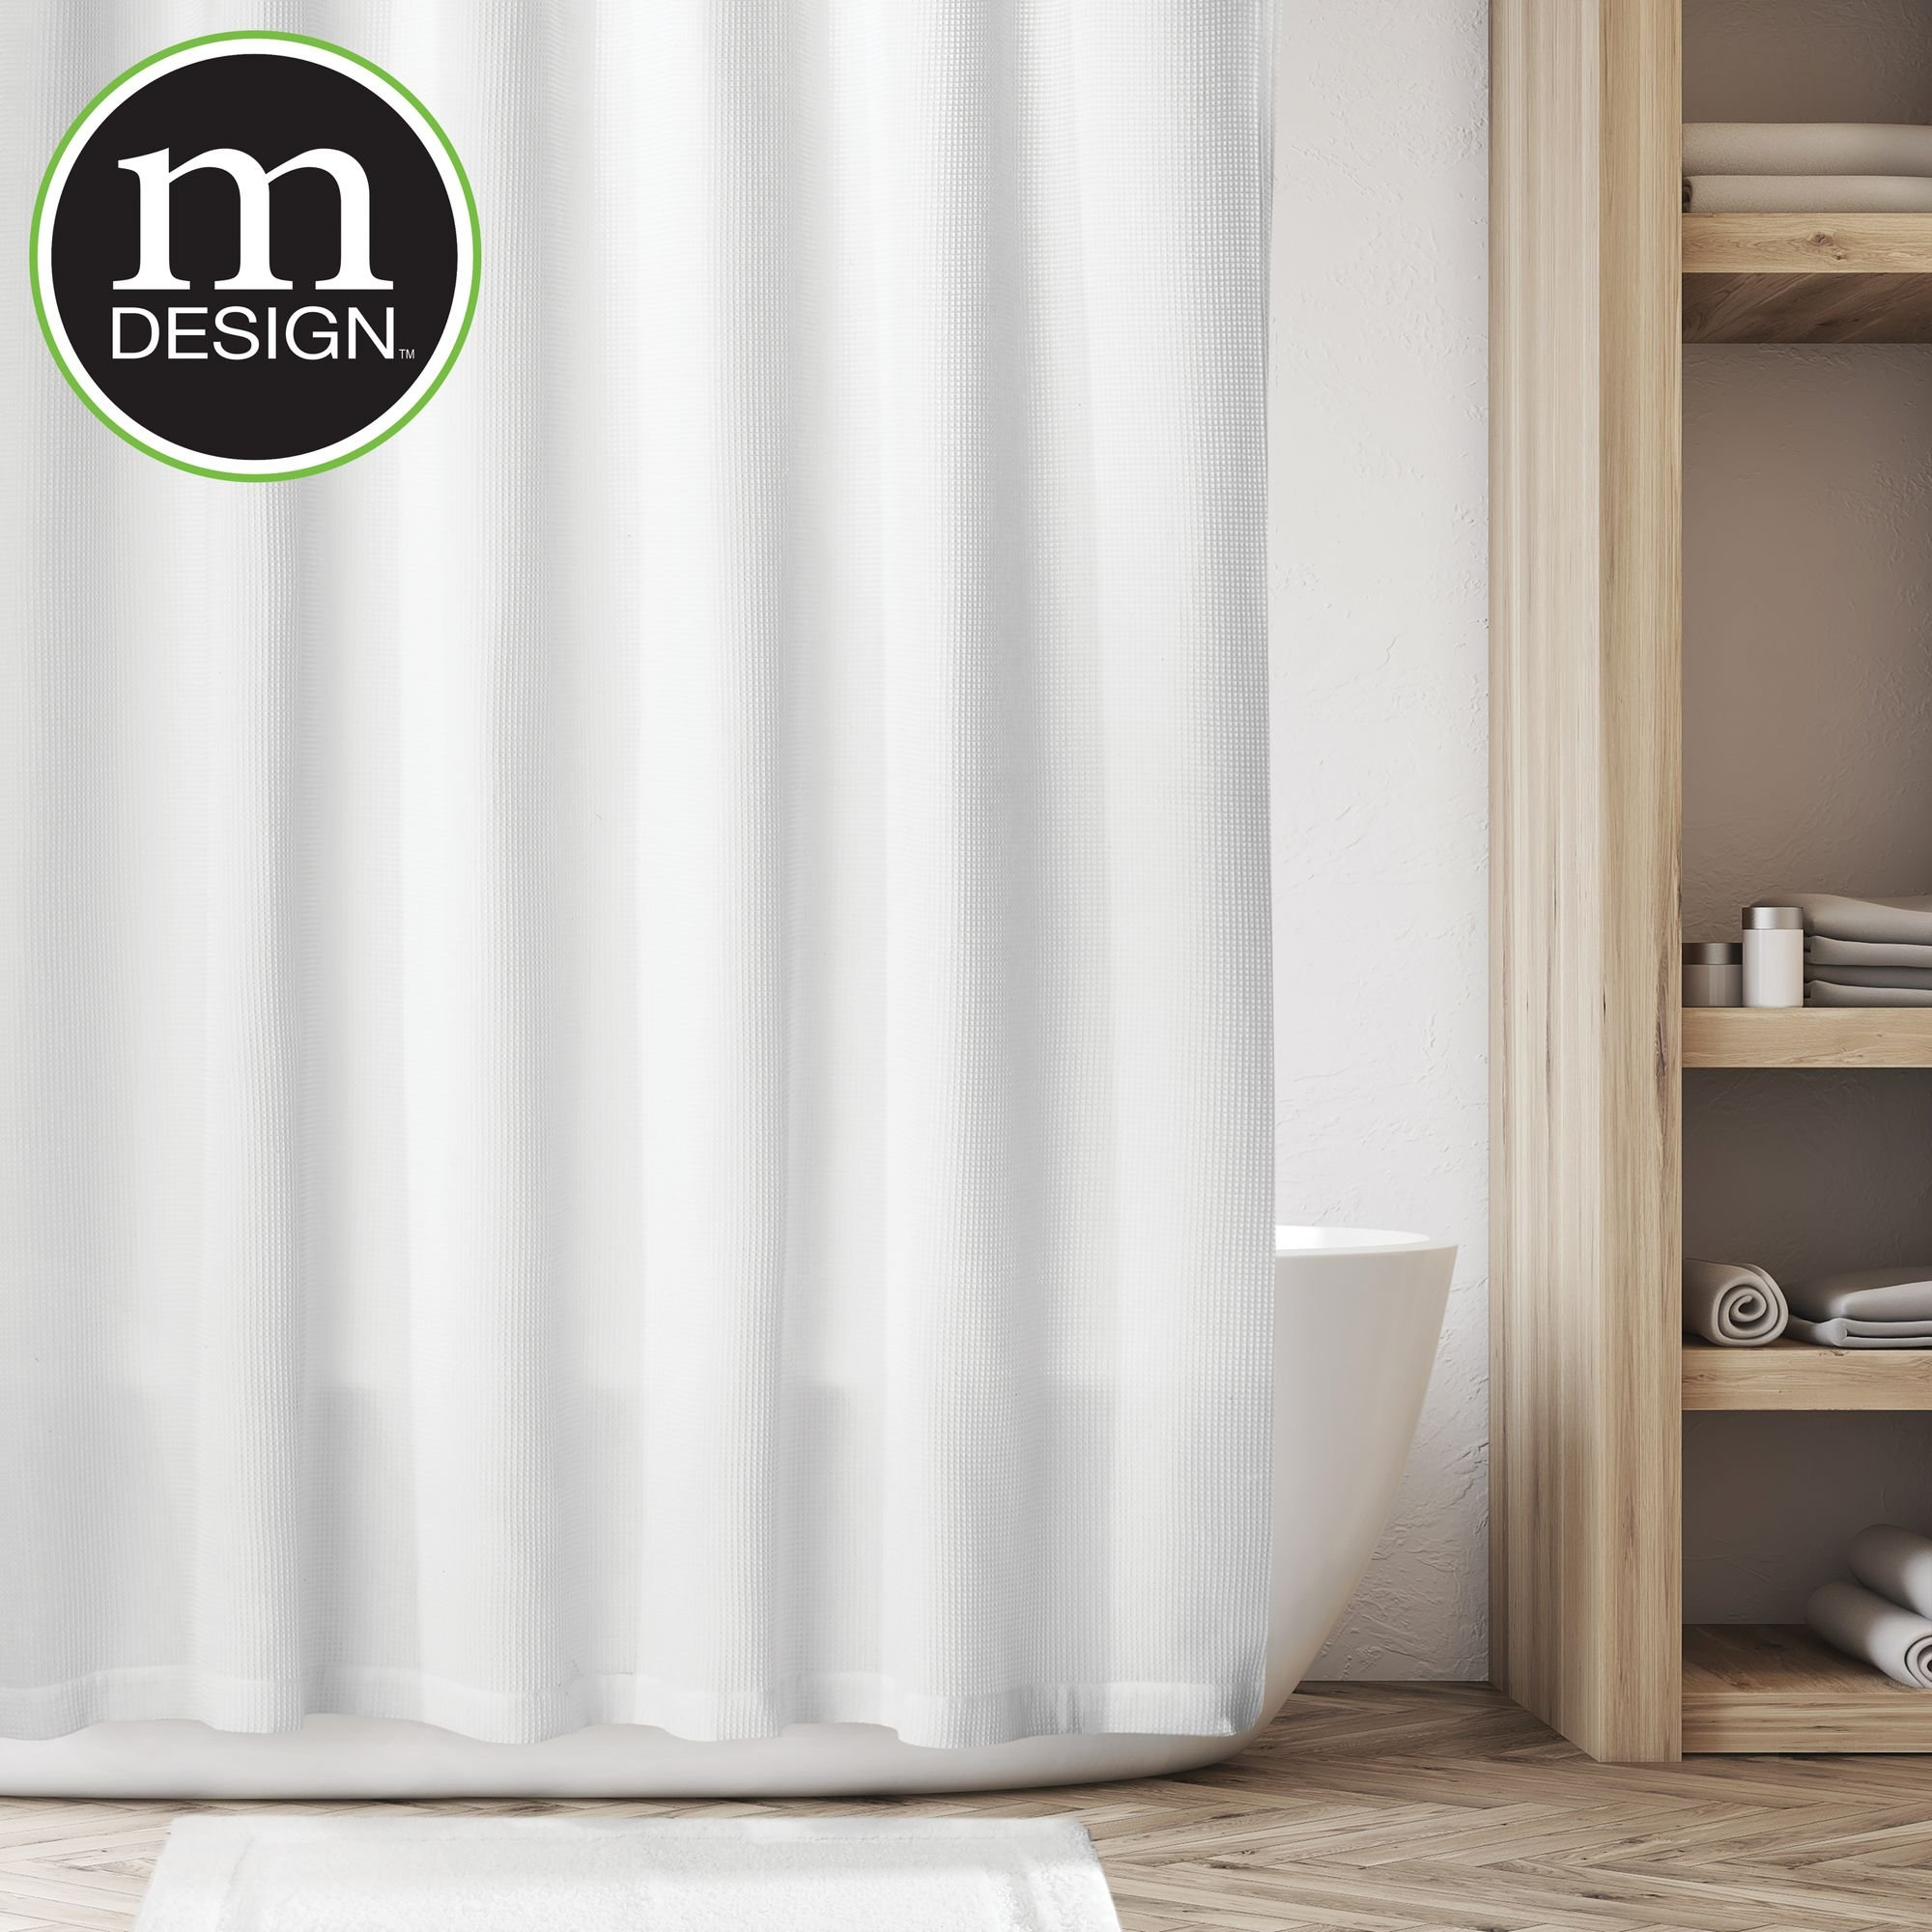 mDesign Hotel Quality Premium Waffle Weave Cotton Fabric Shower Curtain with Reinforced Buttonholes - for Bathroom Showers and Bathtubs, Super Soft, Easy Care - 72'' x 72'', White